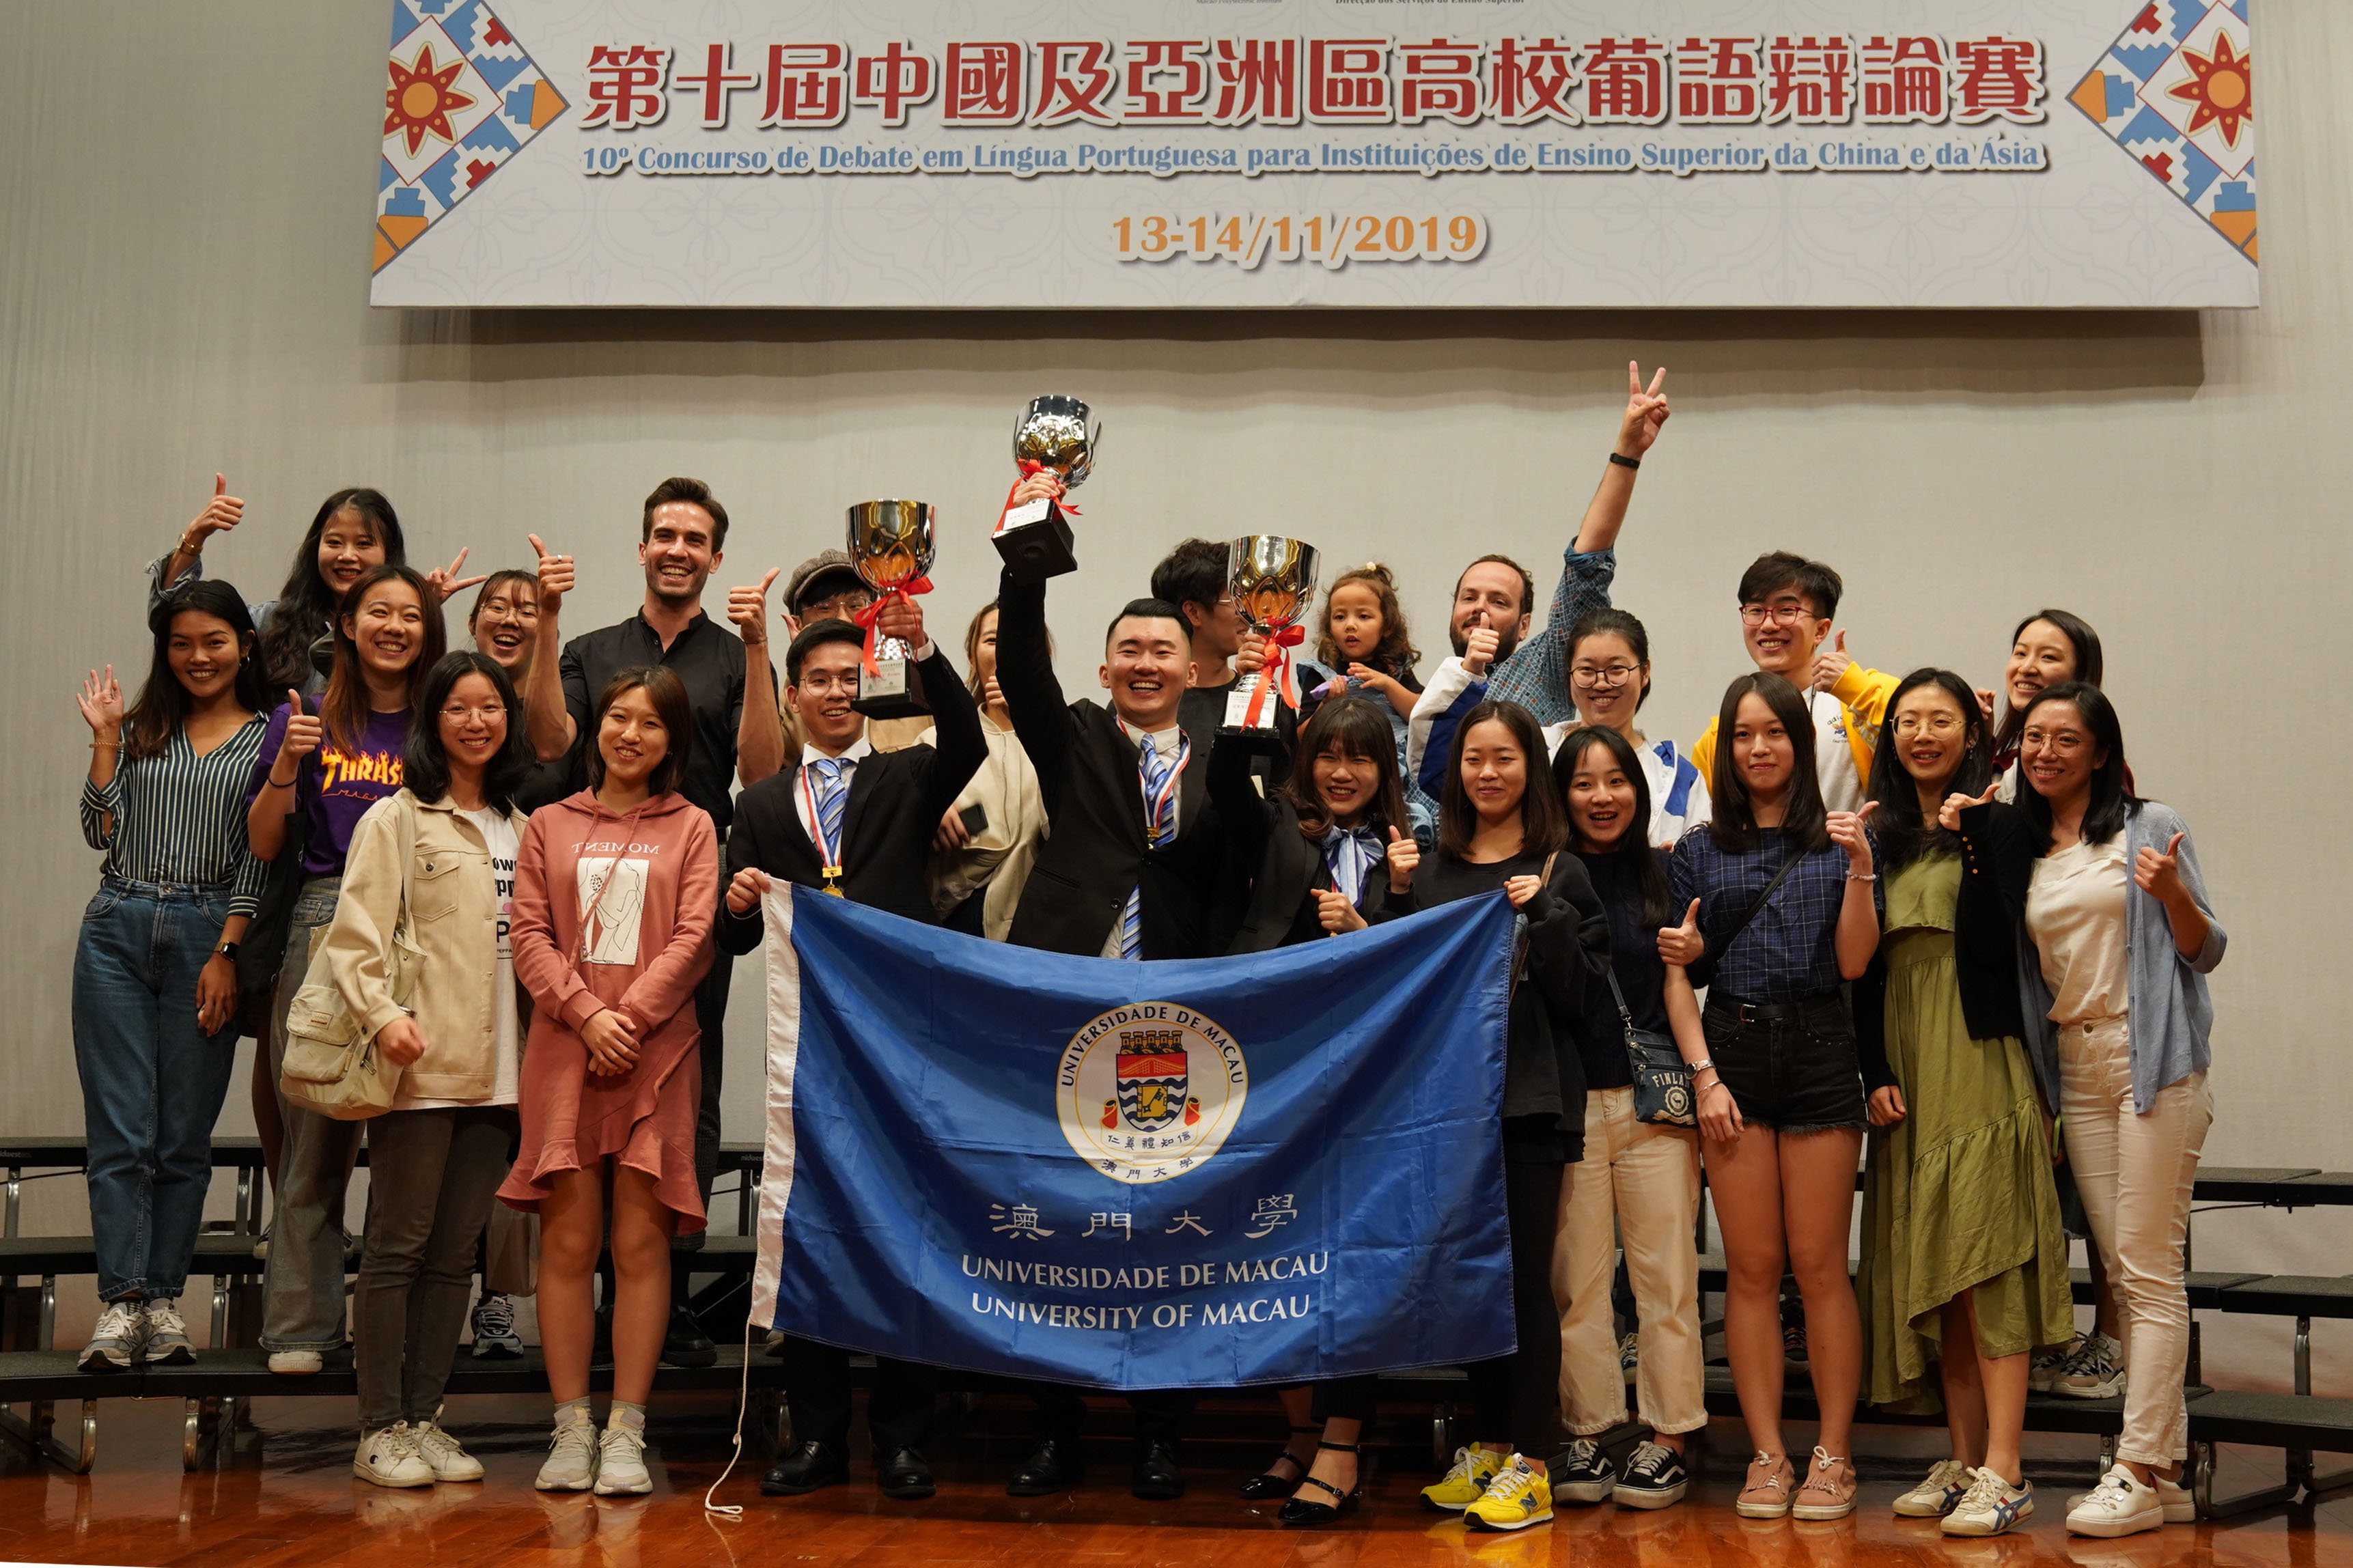 UM wins the championship of a Portuguese debate competition